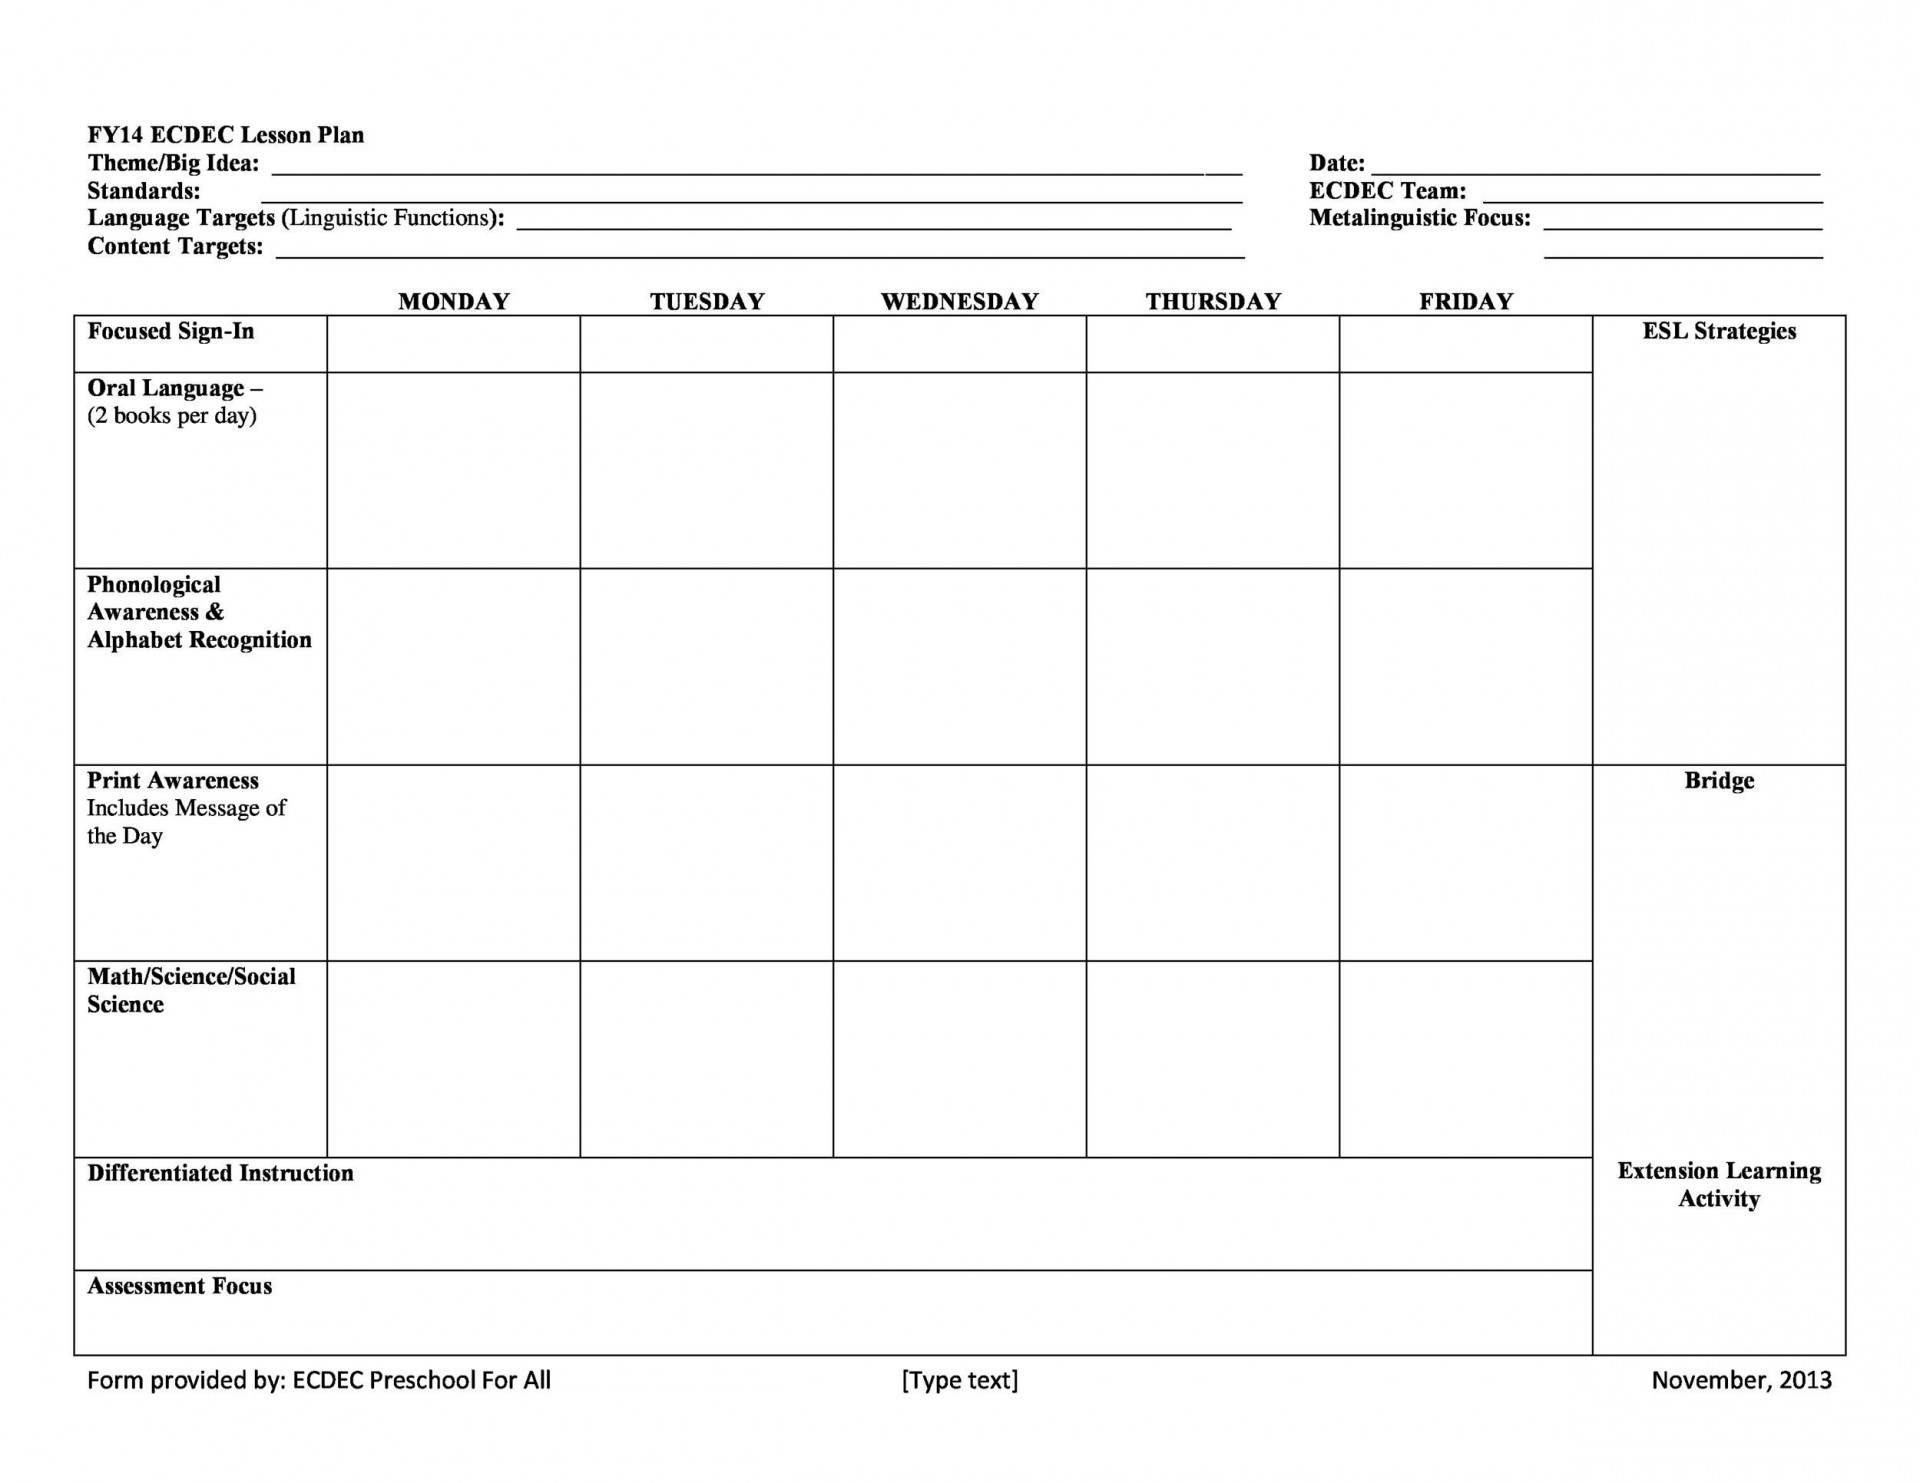 005 Awesome Lesson Plan Template For Preschool Photo  Format Teacher Free Printable1920